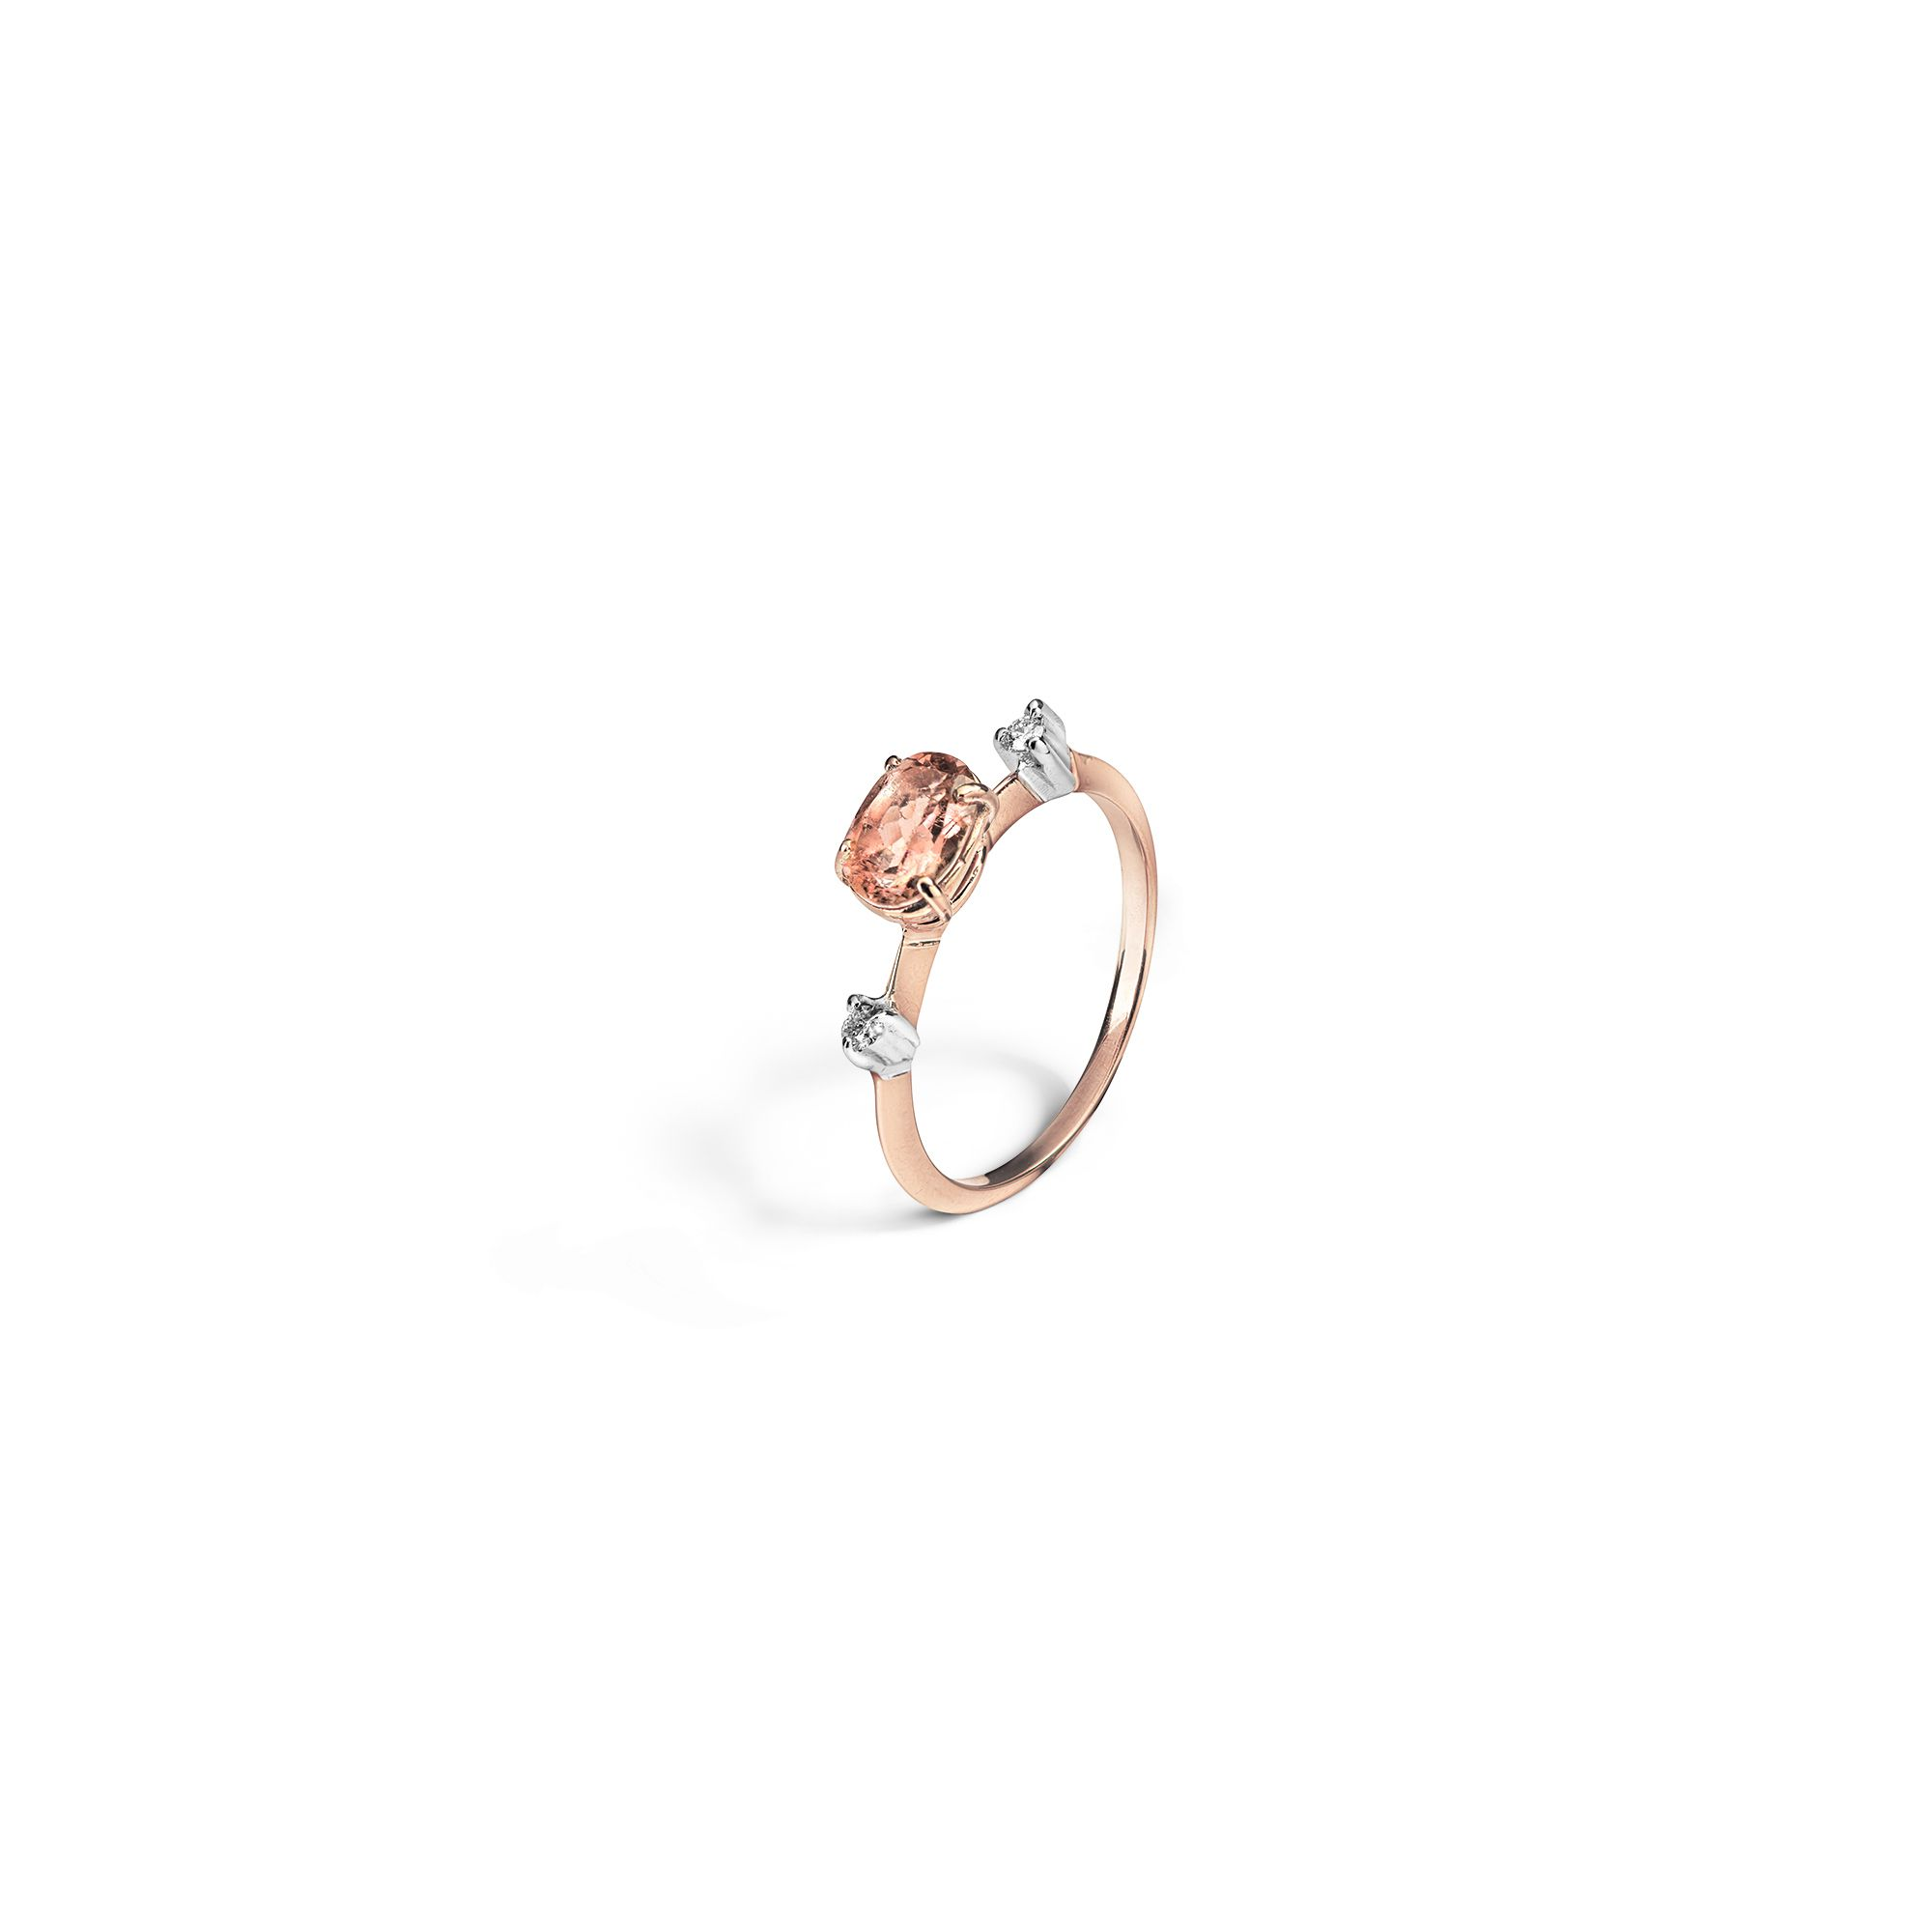 'Balance' ring with tourmaline Rose gold ring with tourmaline and diamonds